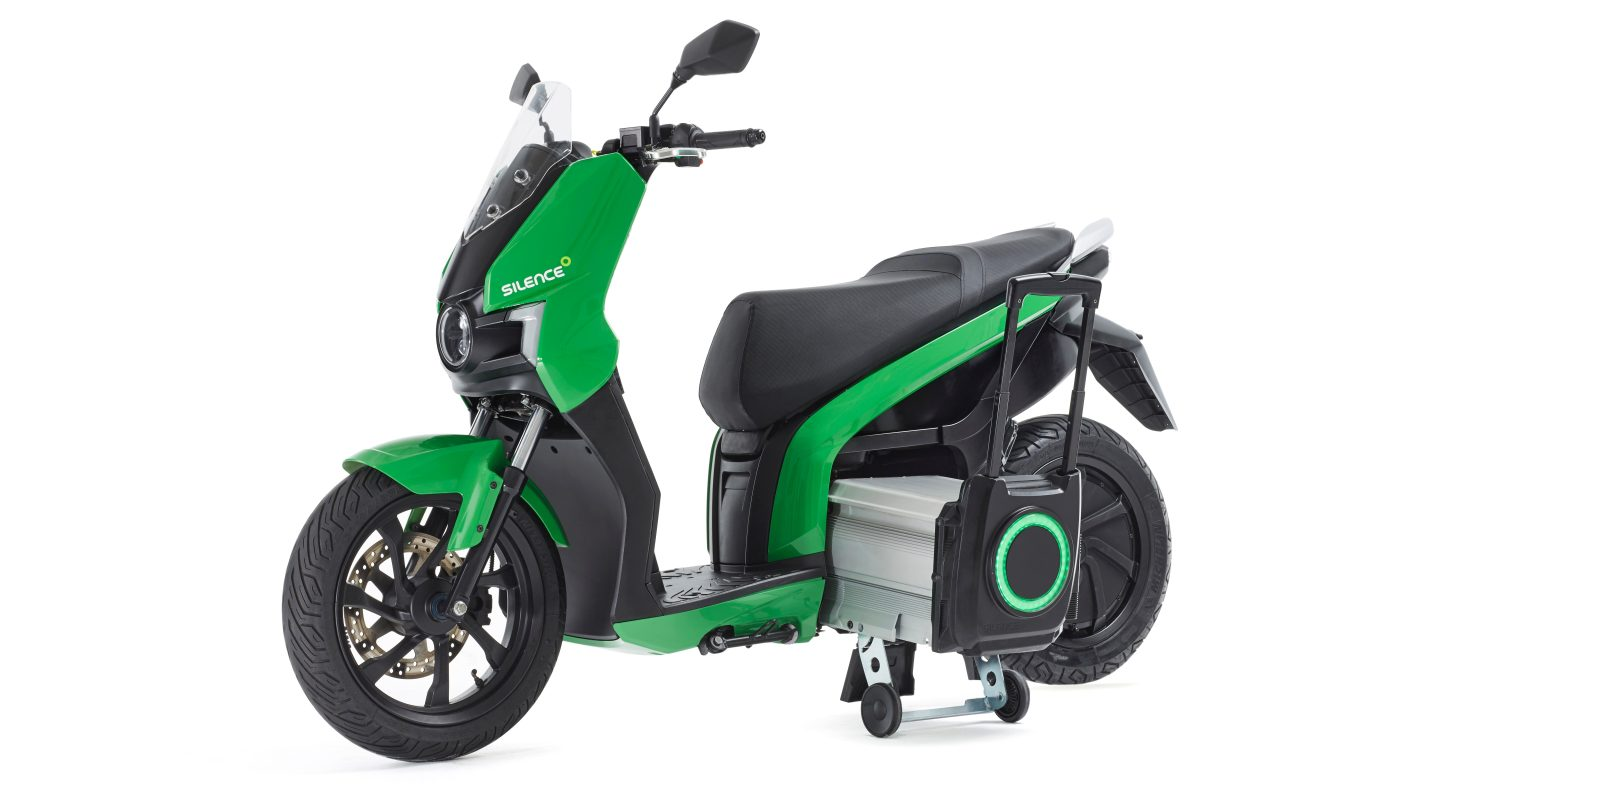 Silence's 100 km/h electric scooters with removable wheeled